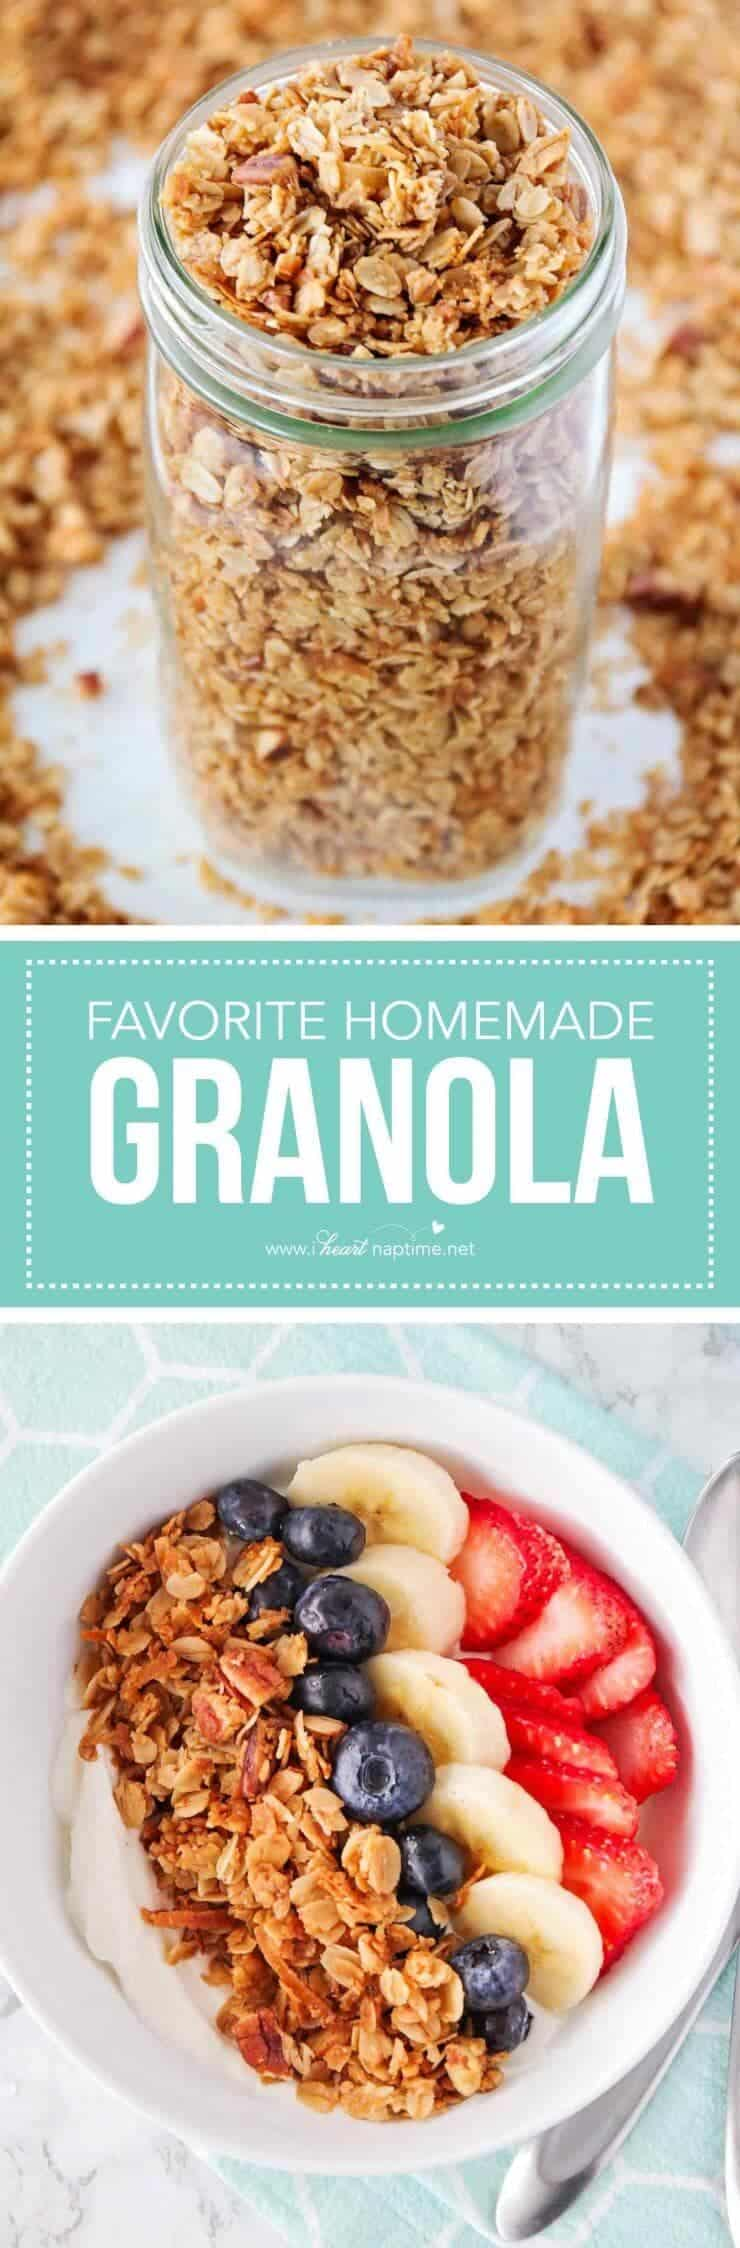 Favorite homemade granola recipe